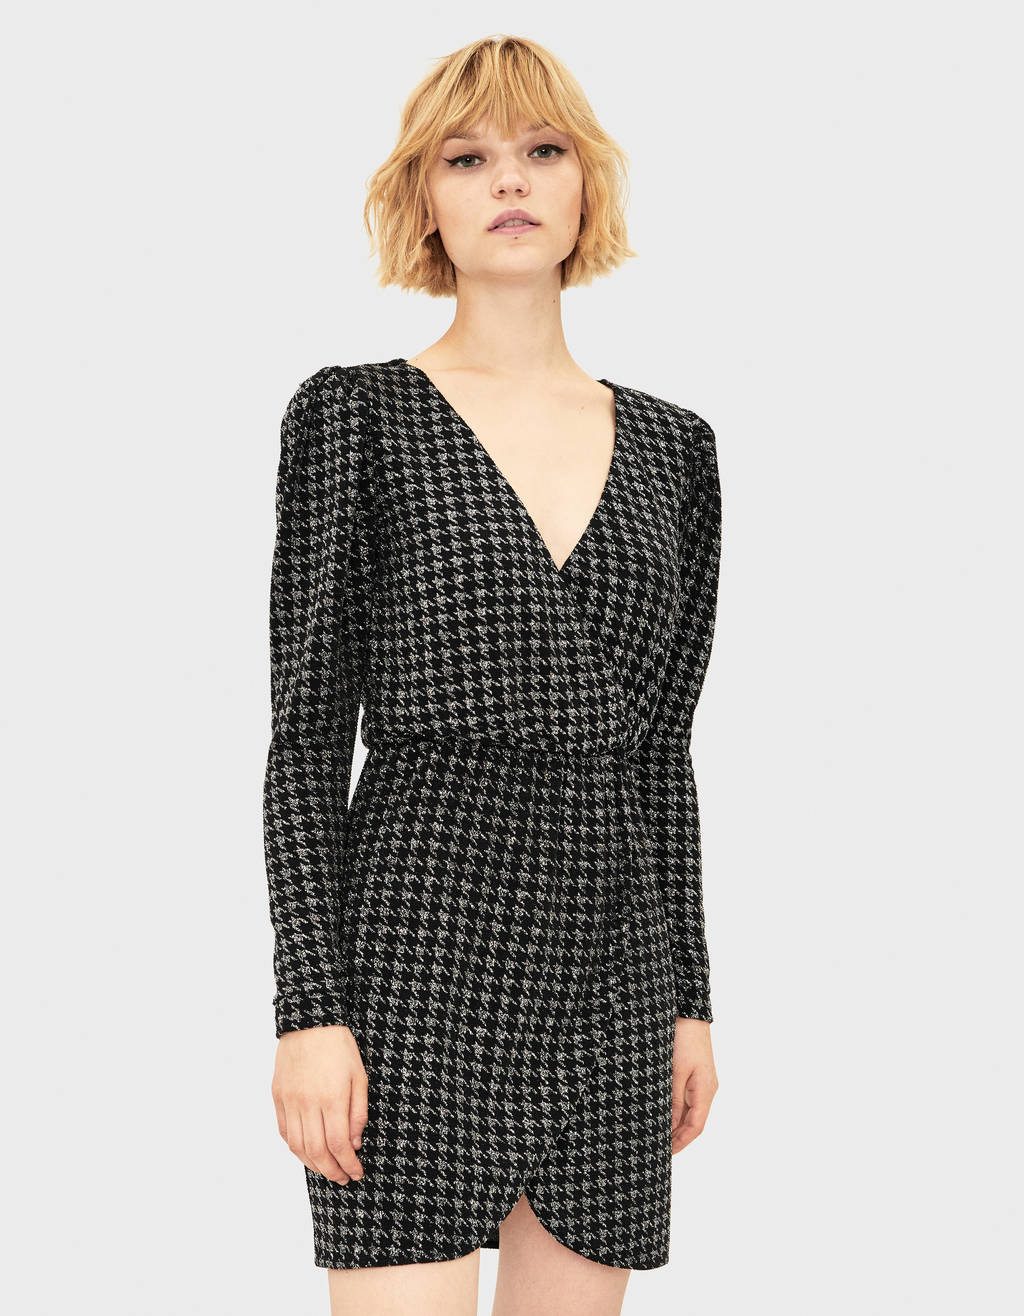 Houndstooth dress with shimmer